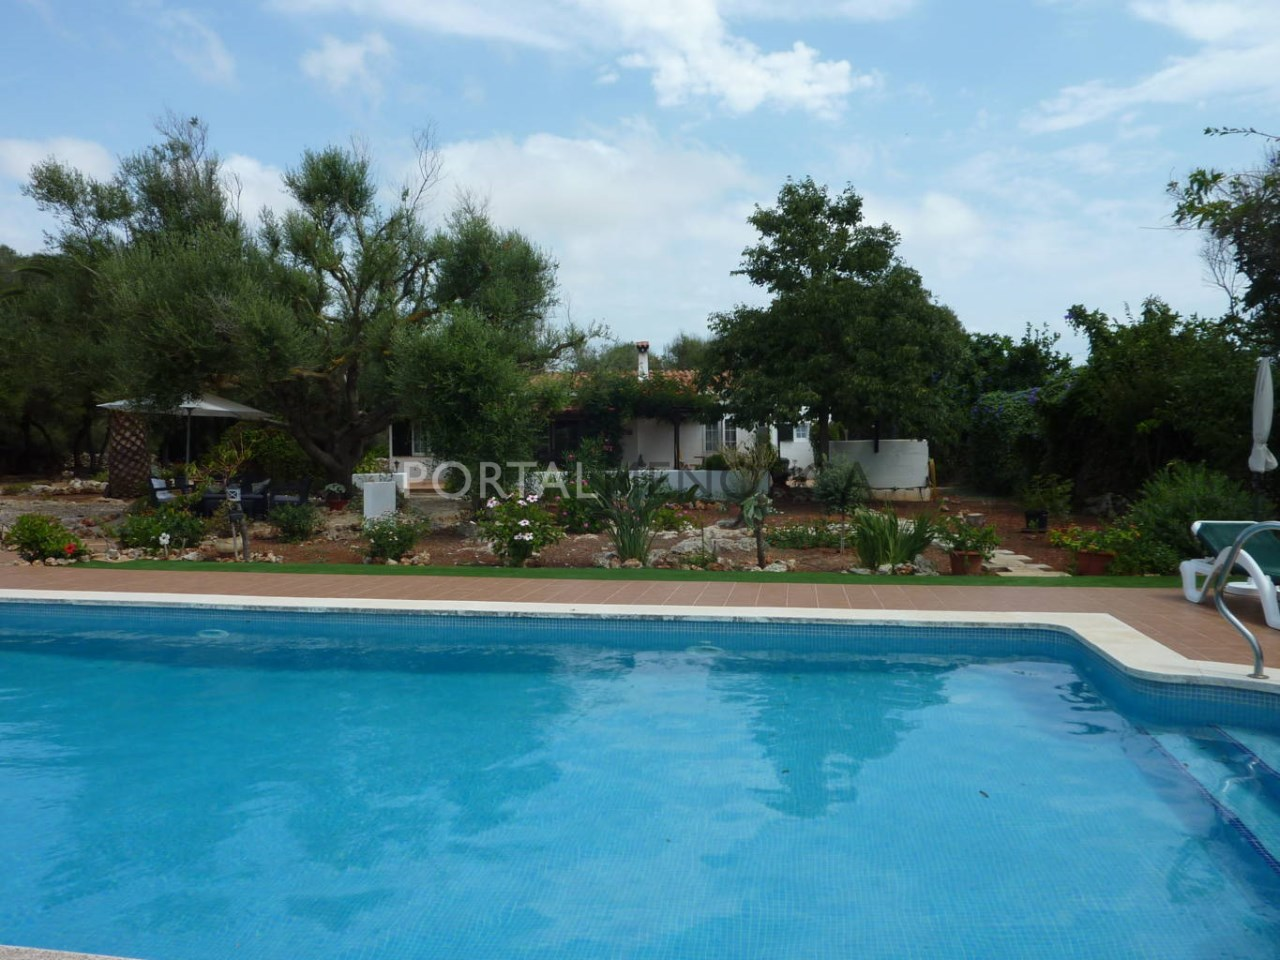 House for sale in Menorca with swimming pool